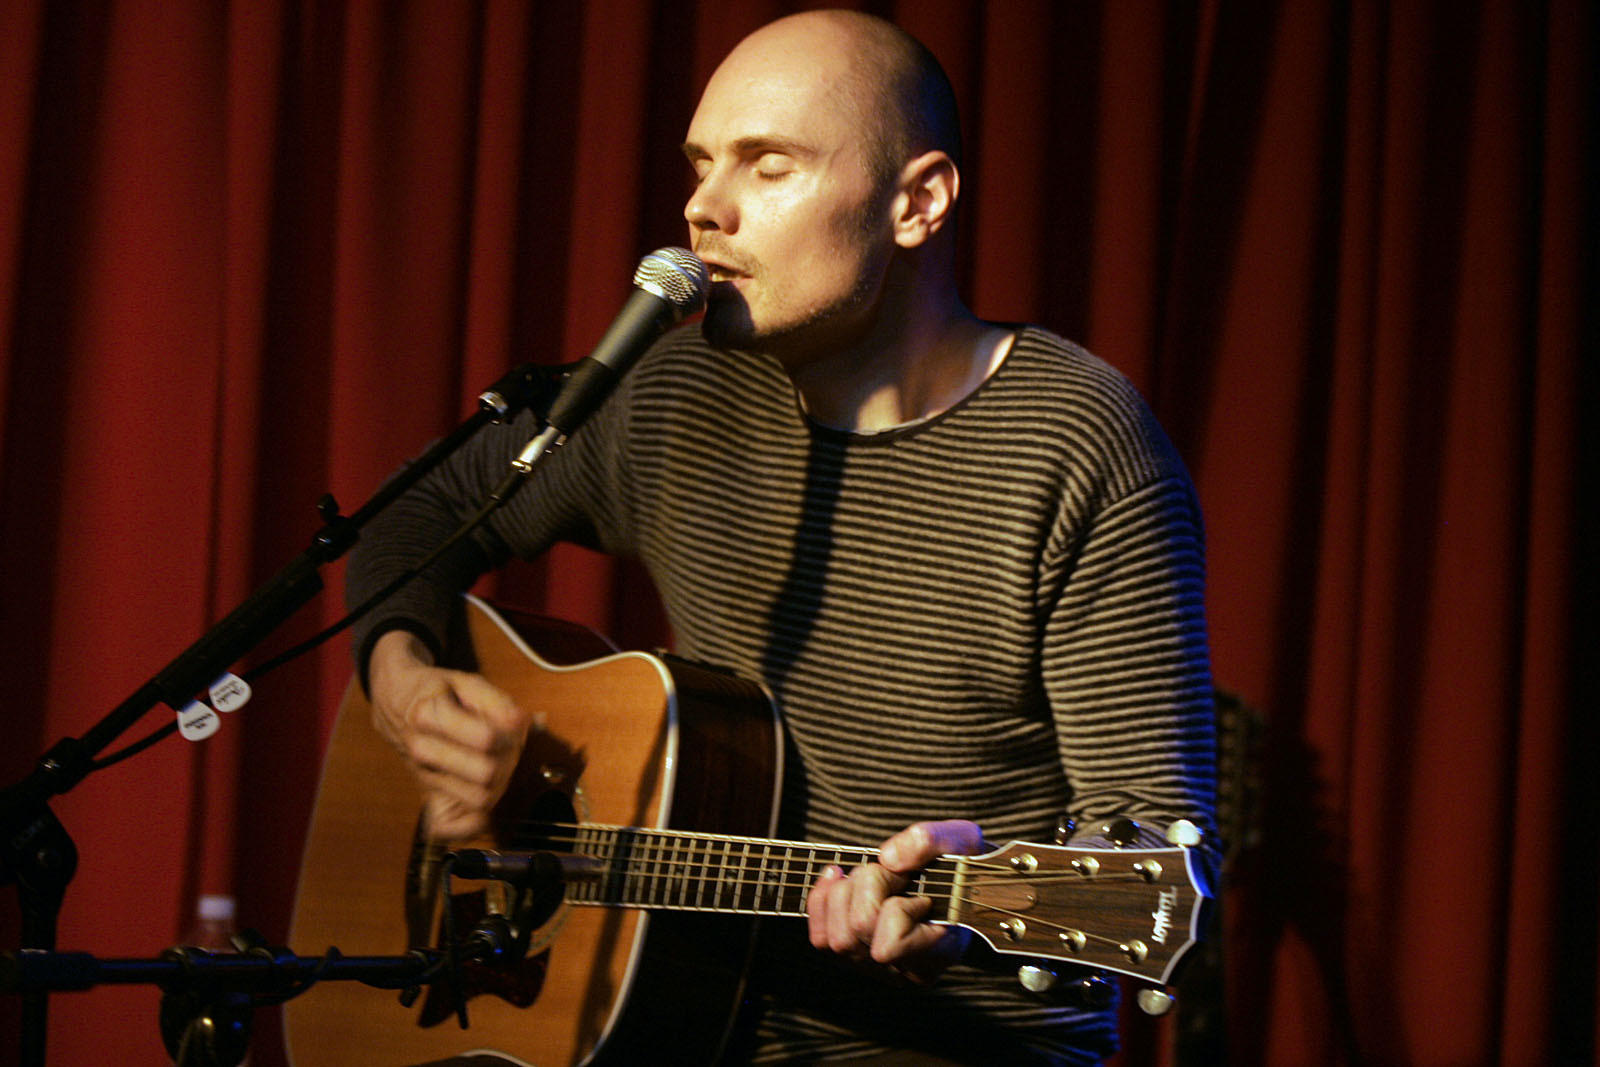 Billy Corgan has announced a new experimental LP.